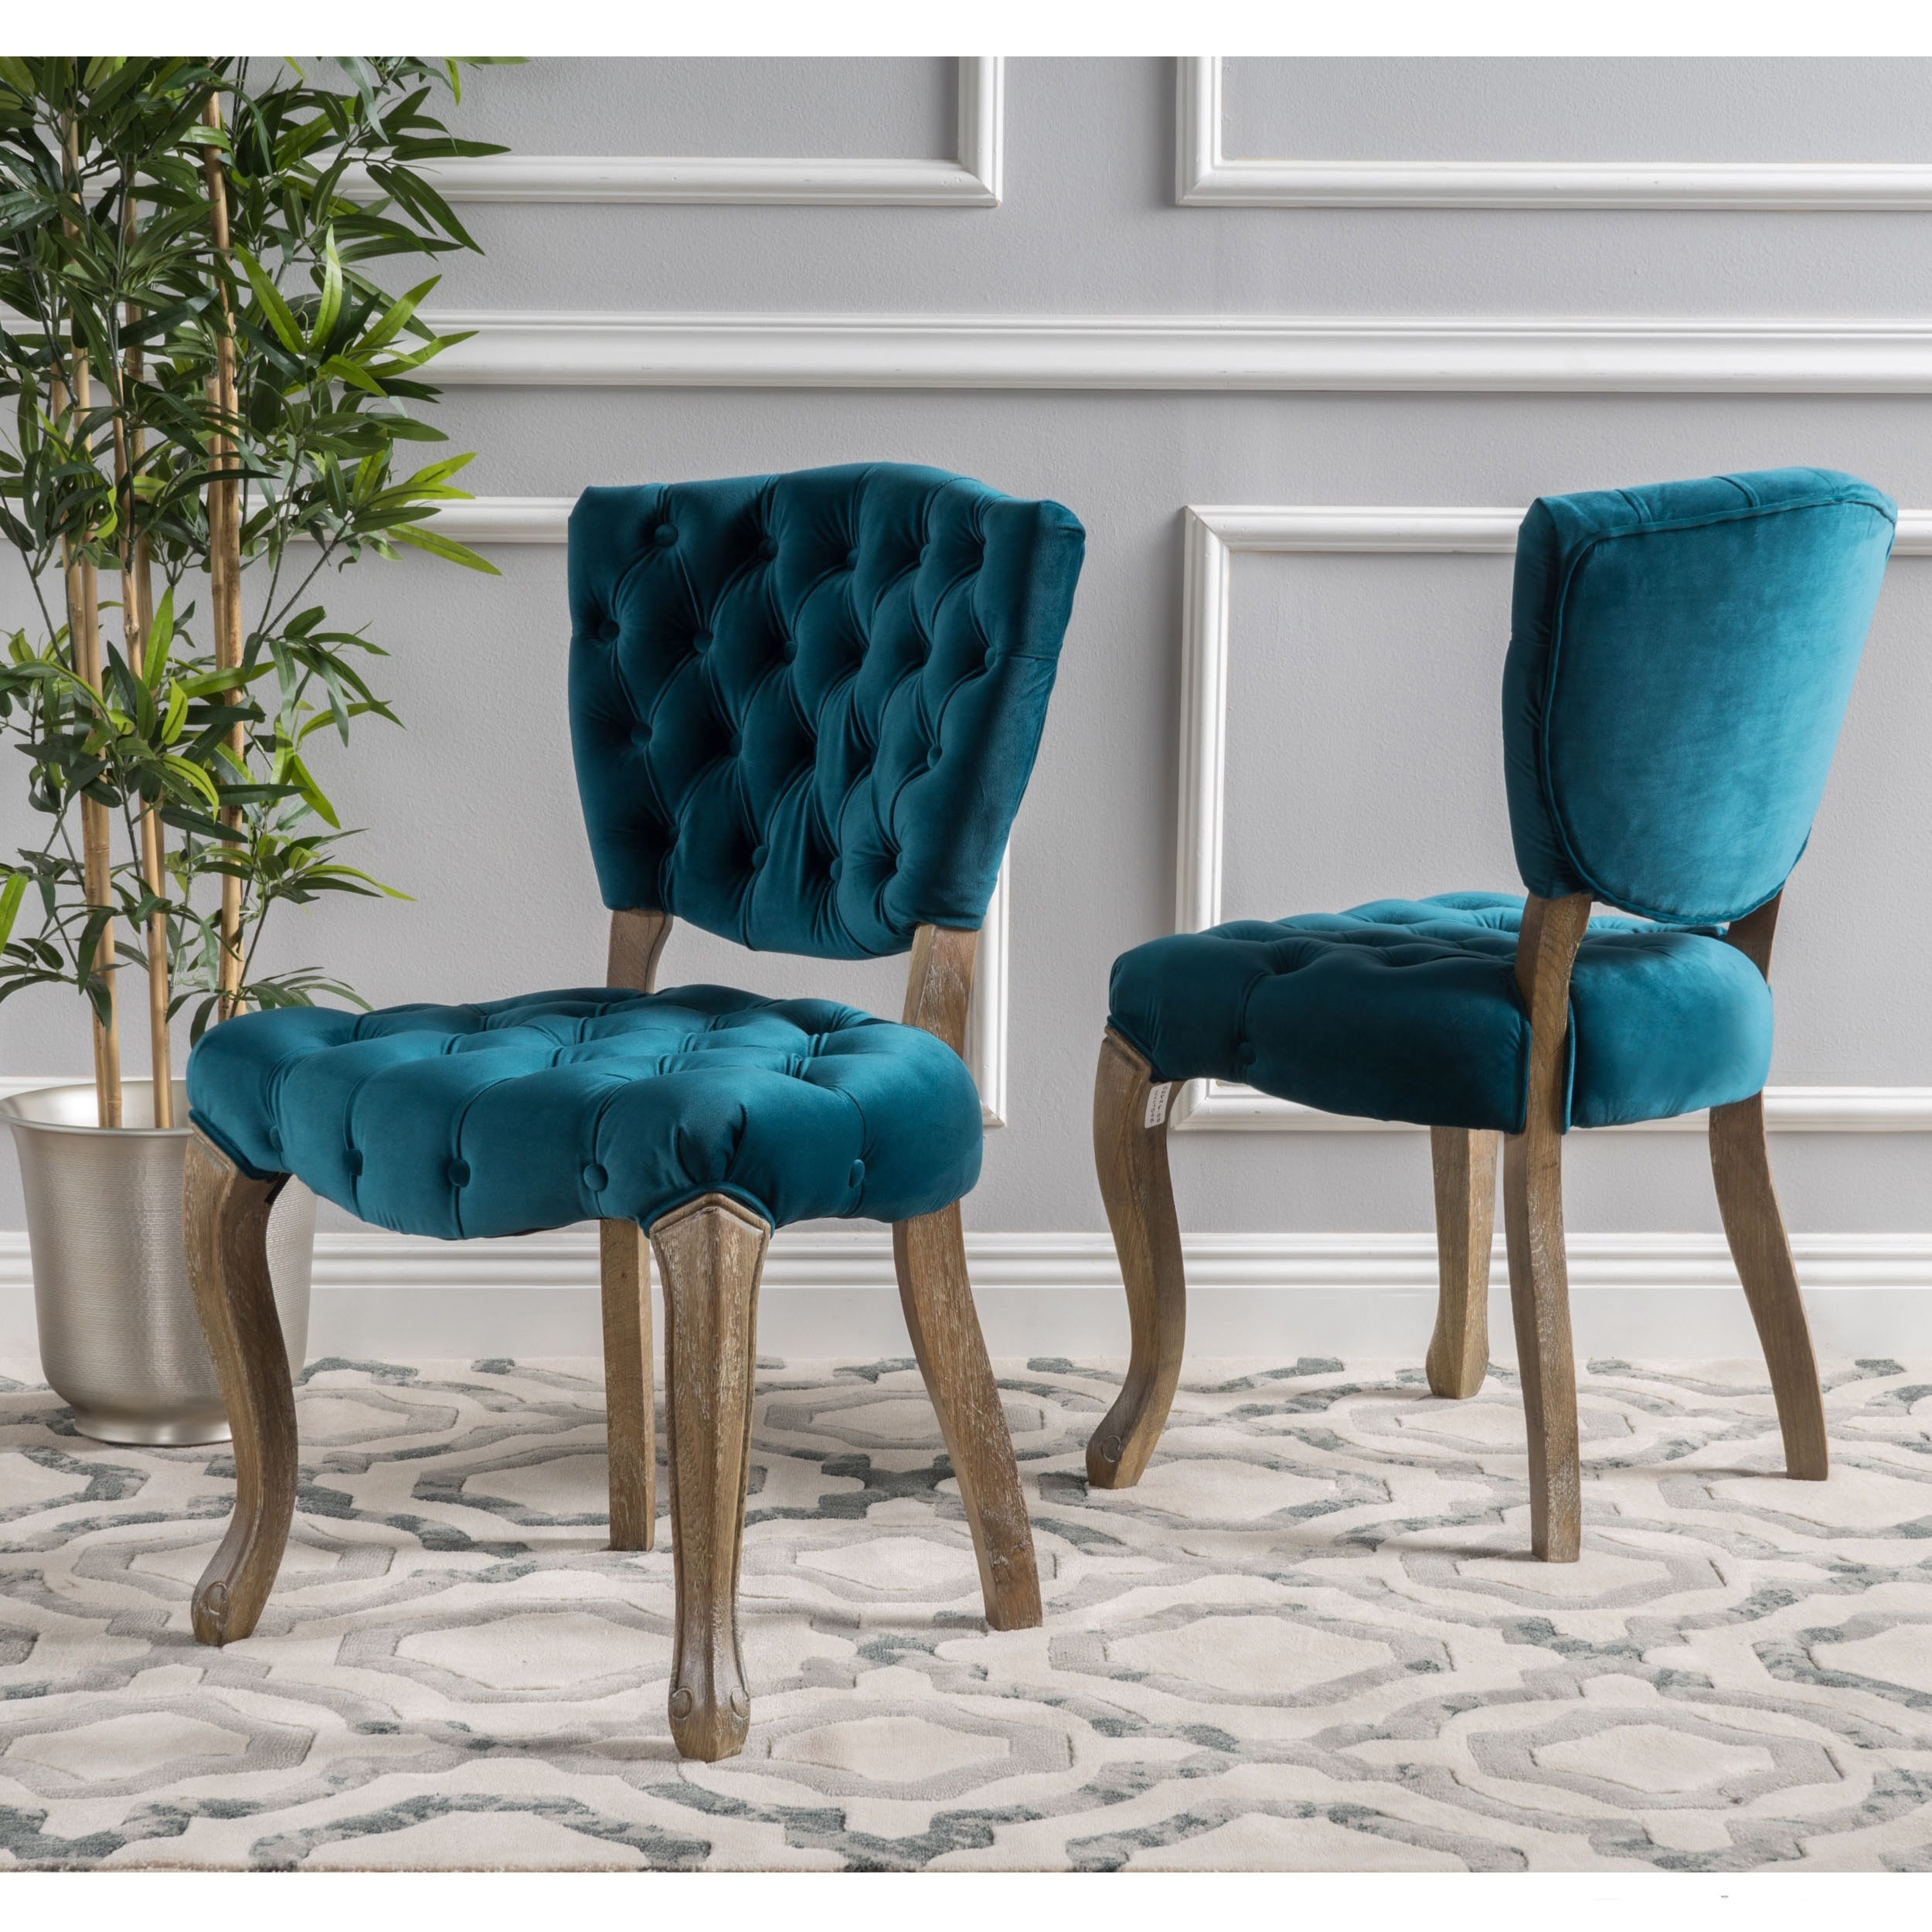 Shop Bates Tufted Grey Fabric Dining Chairs (Set of 2) - Free Shipping  Today - Overstock - 20603052